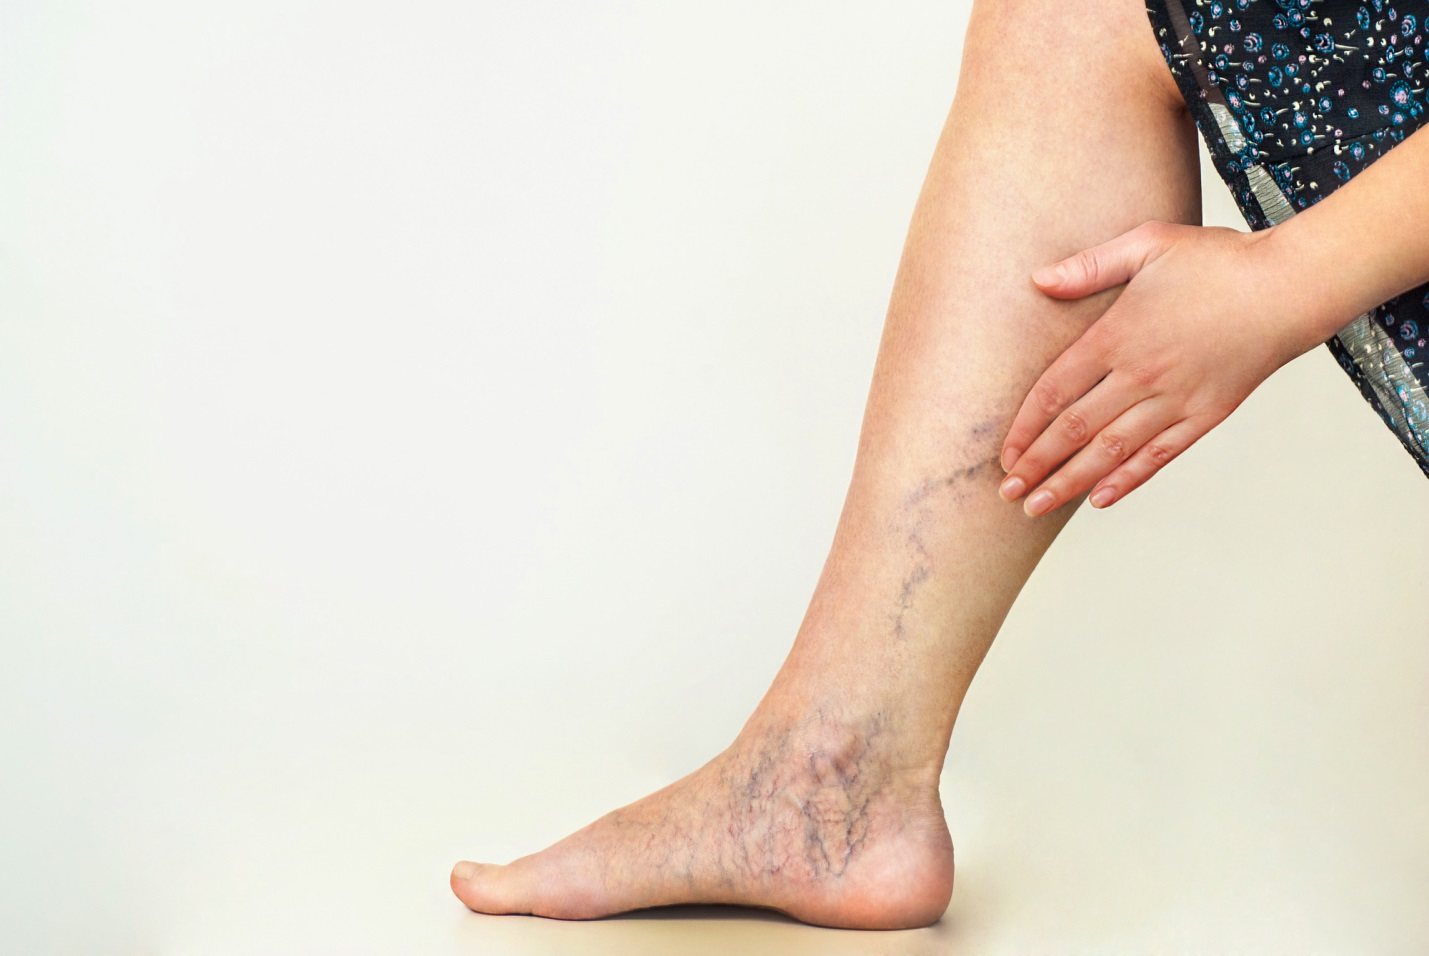 C:\Users\Kathir\Pictures\Home Remedies for Varicose Veins.jpg